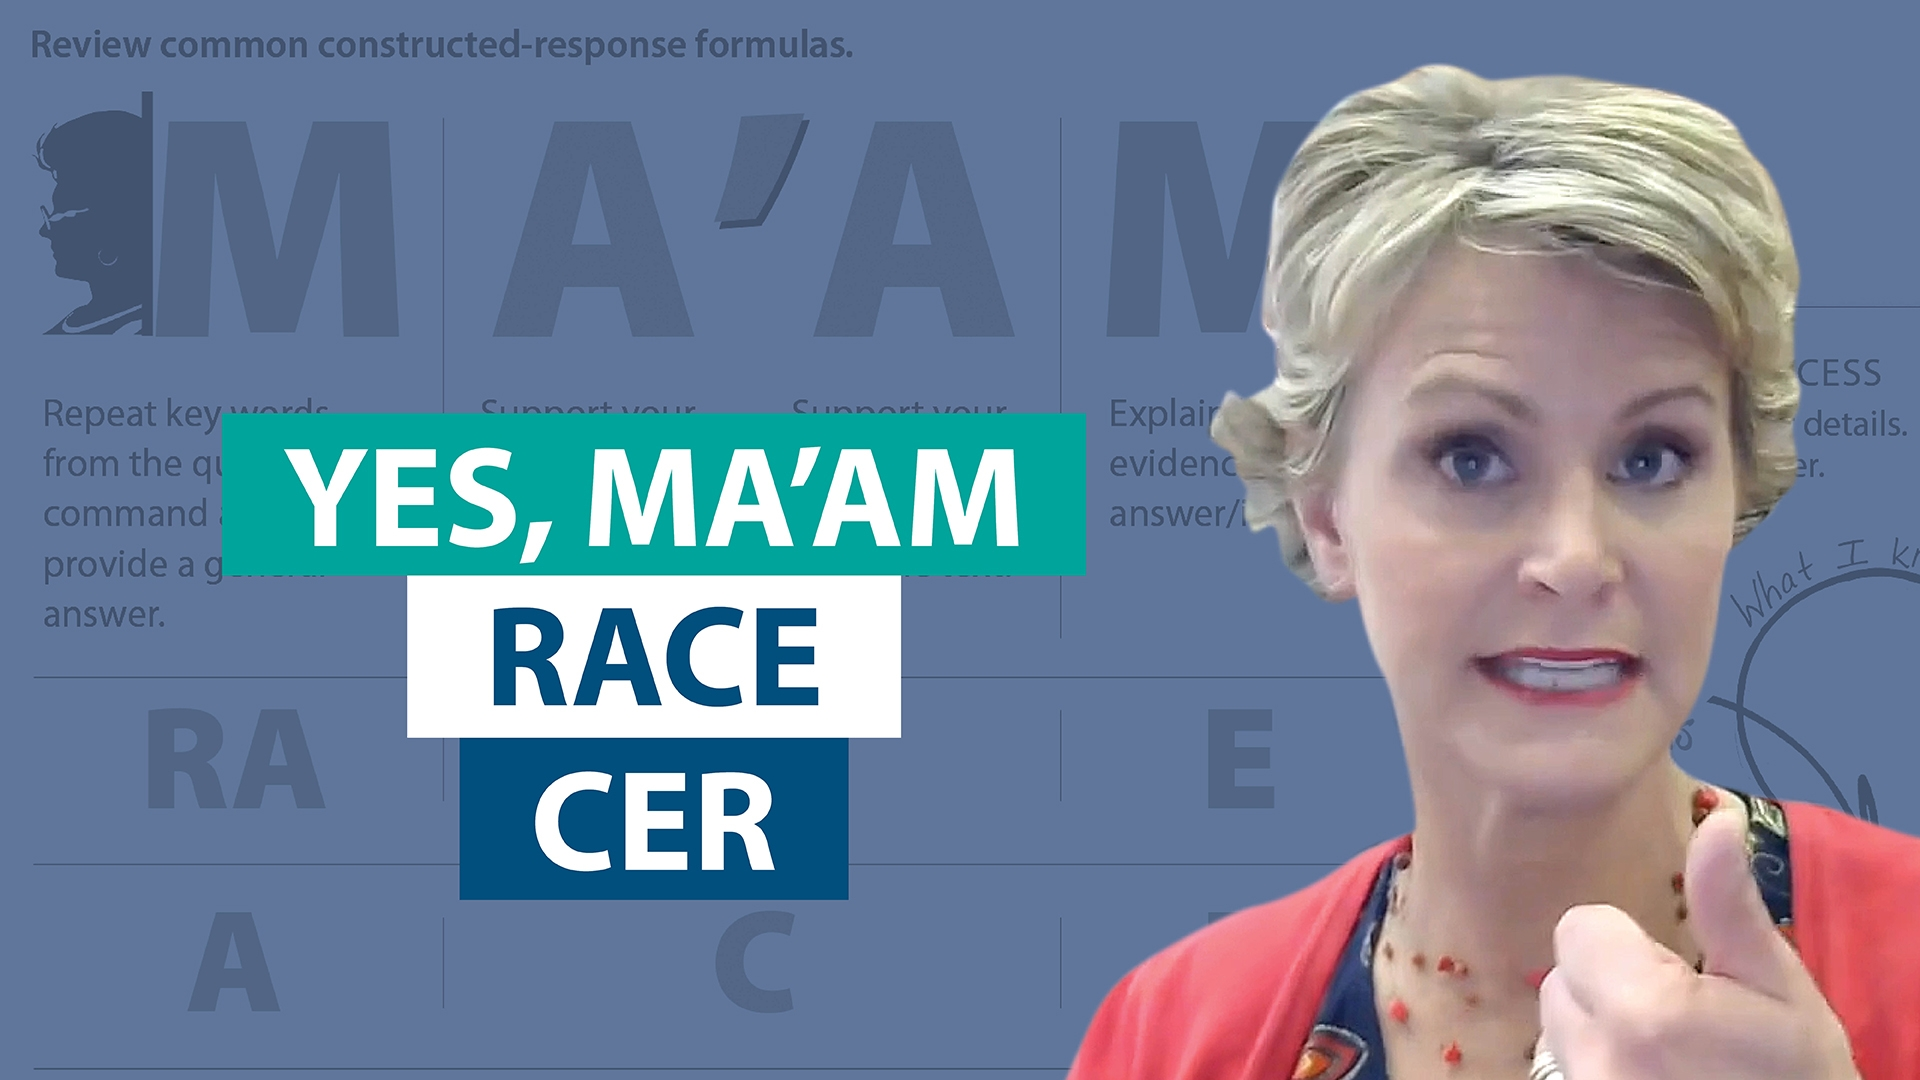 How does Yes MAAM fit with RACE and CER?